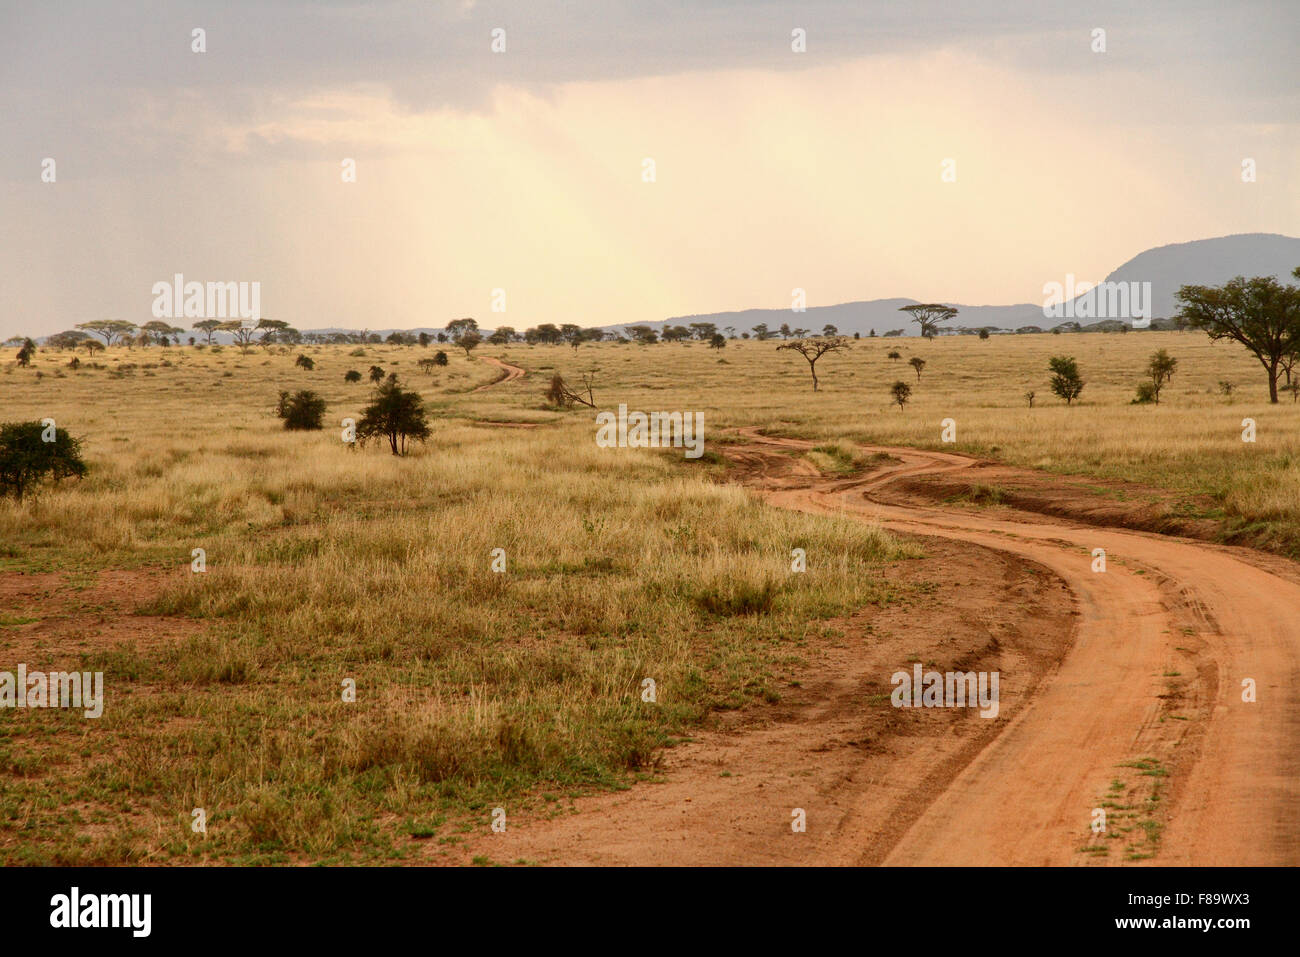 A dirt road winds through the African savannah - Stock Image